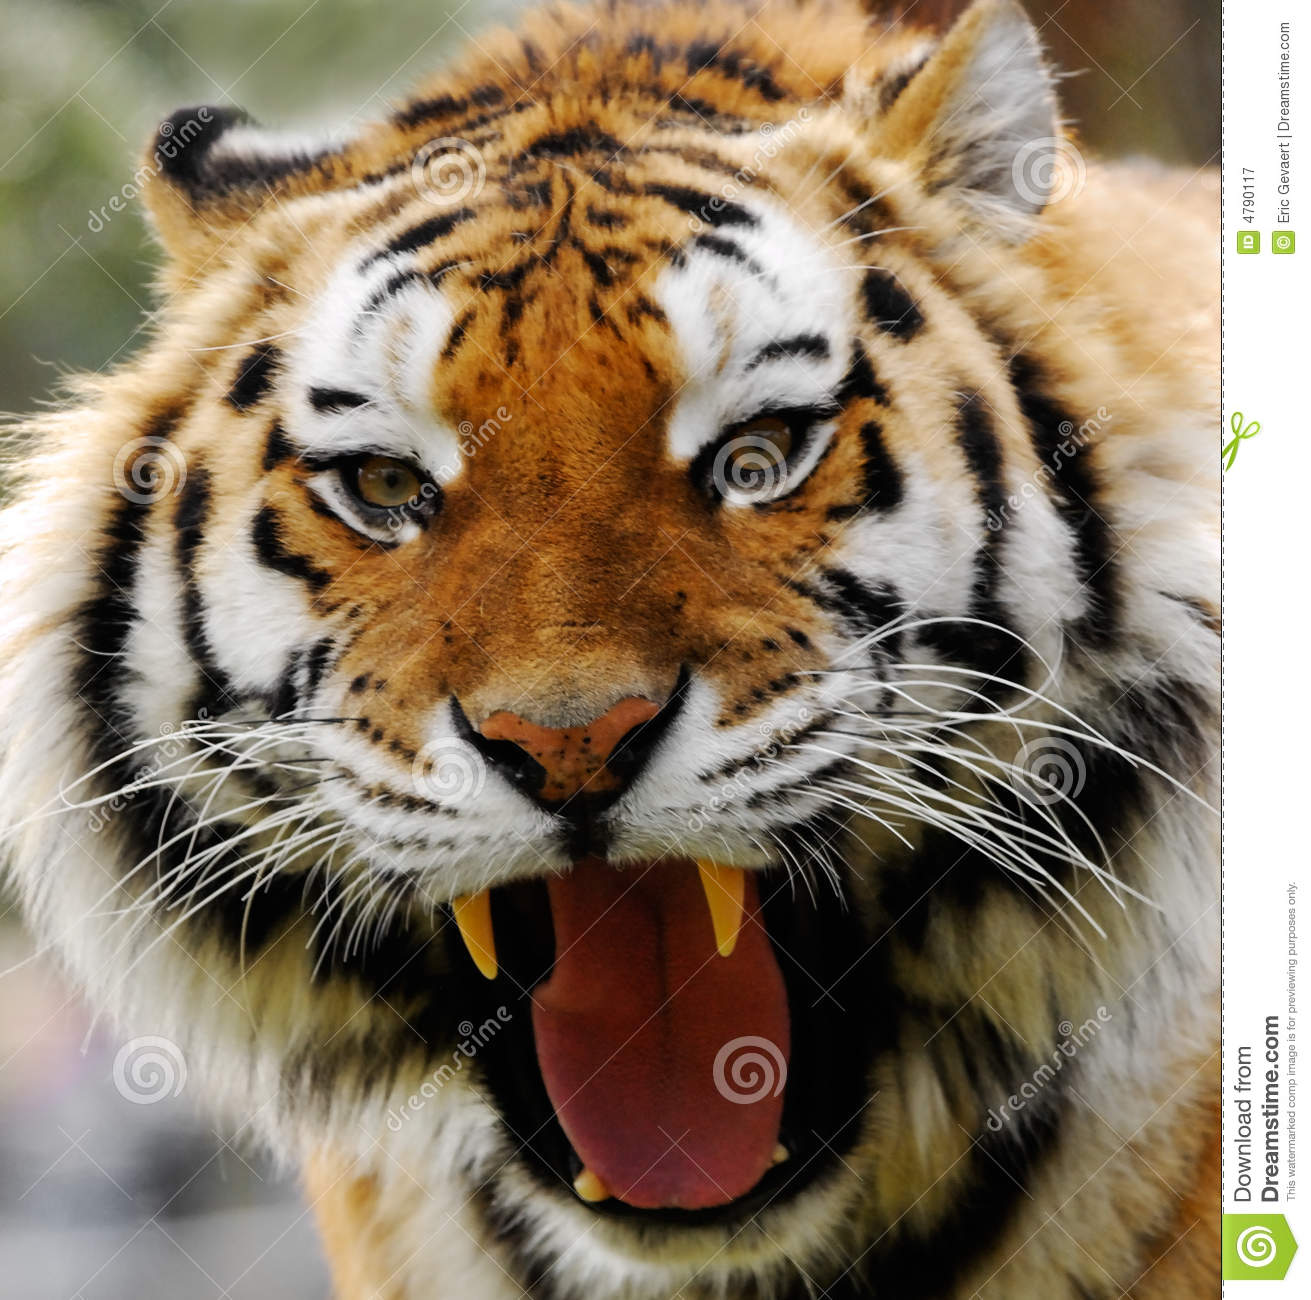 Angry tiger stock image. Image of tigress, teeth, white ...